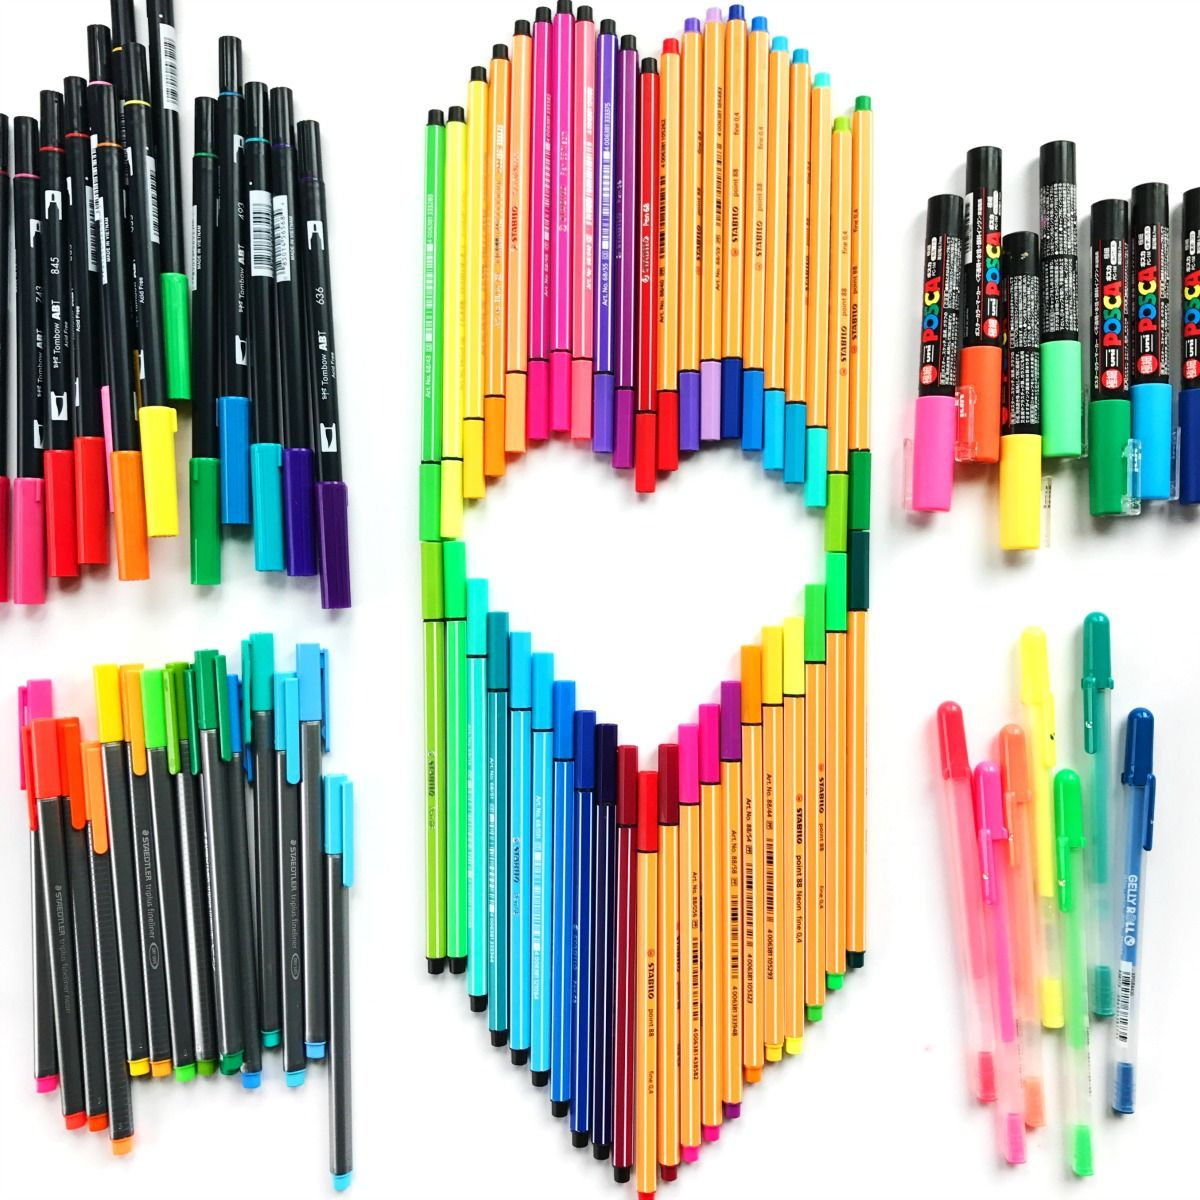 - Best Markers For Drawing, Doodling And Coloring Pen Doodles